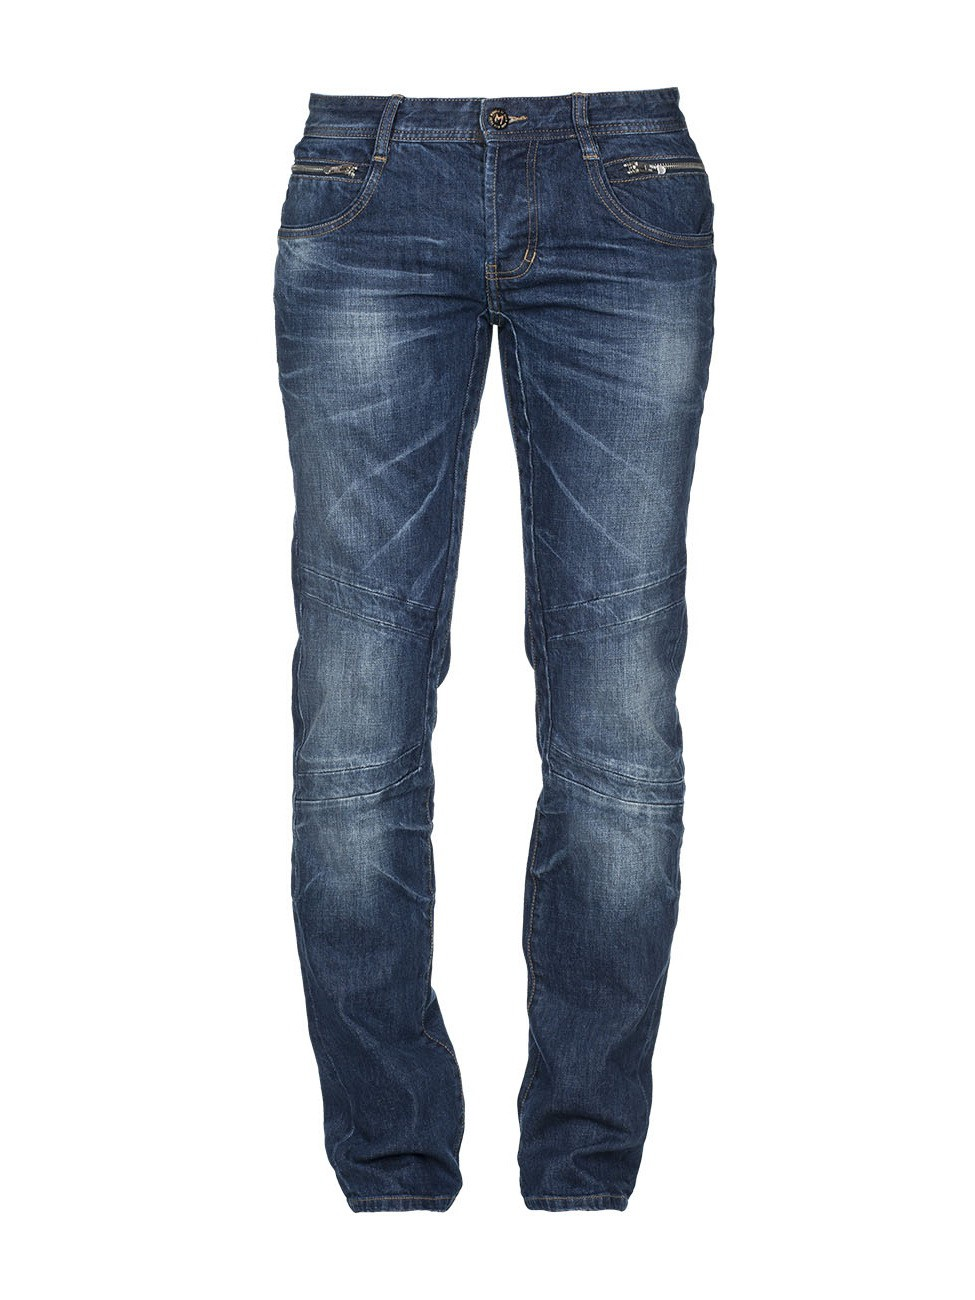 M.O.D. Herren Jeans Jason - Regular Fit - Blau - Vanity Blue